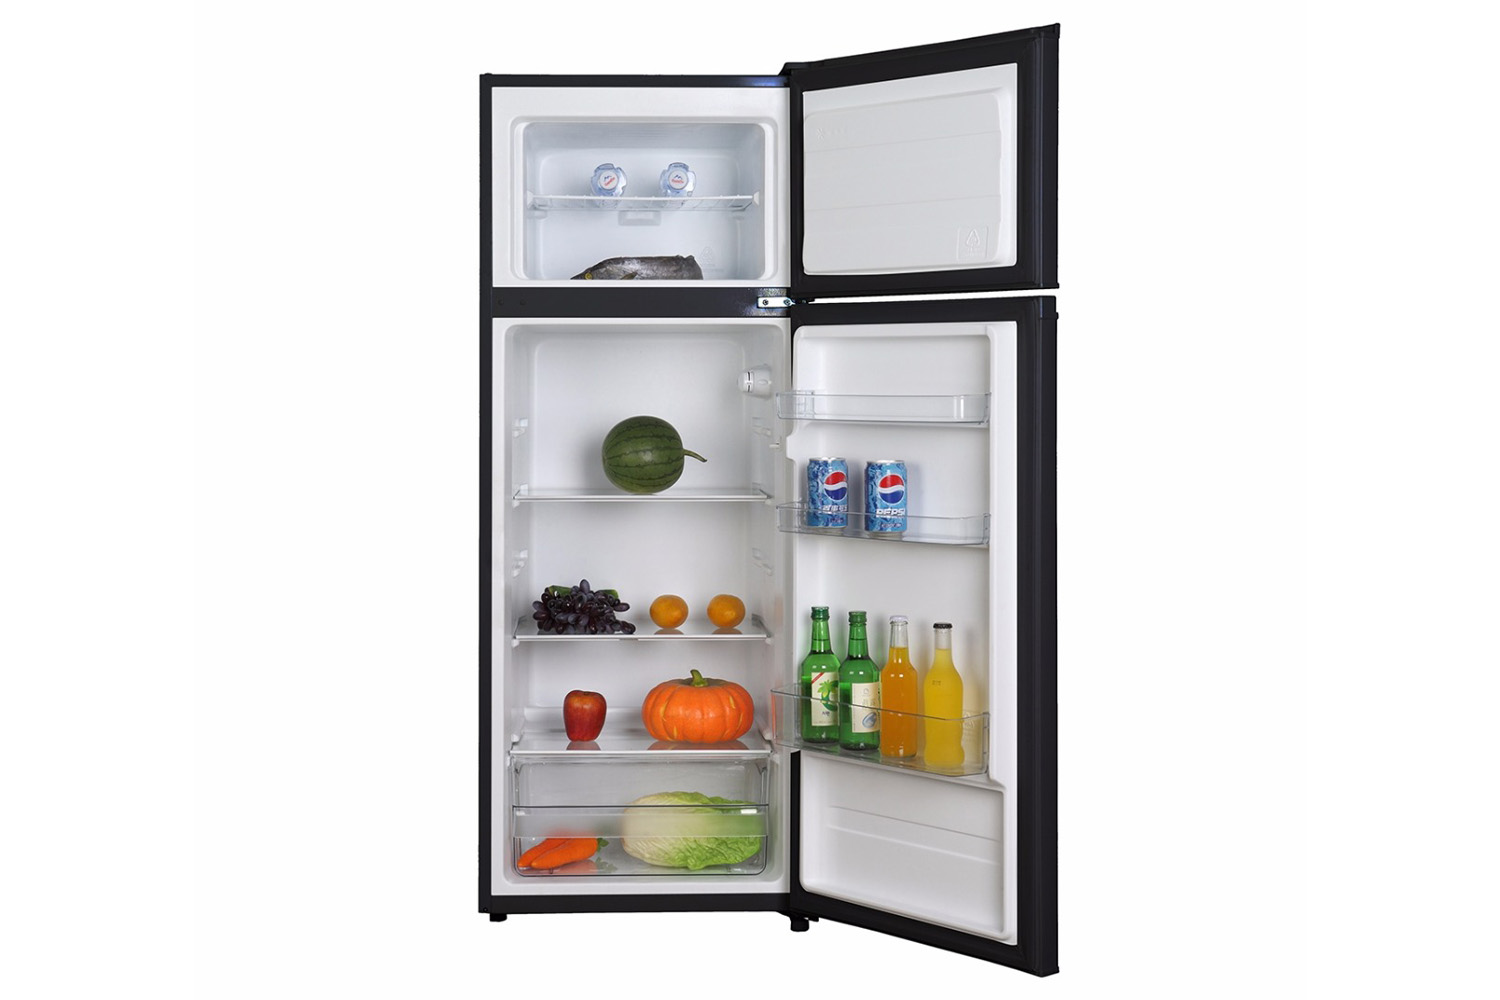 Fridge Freezer Belling Freestanding Fridge Freezer Bff207bk